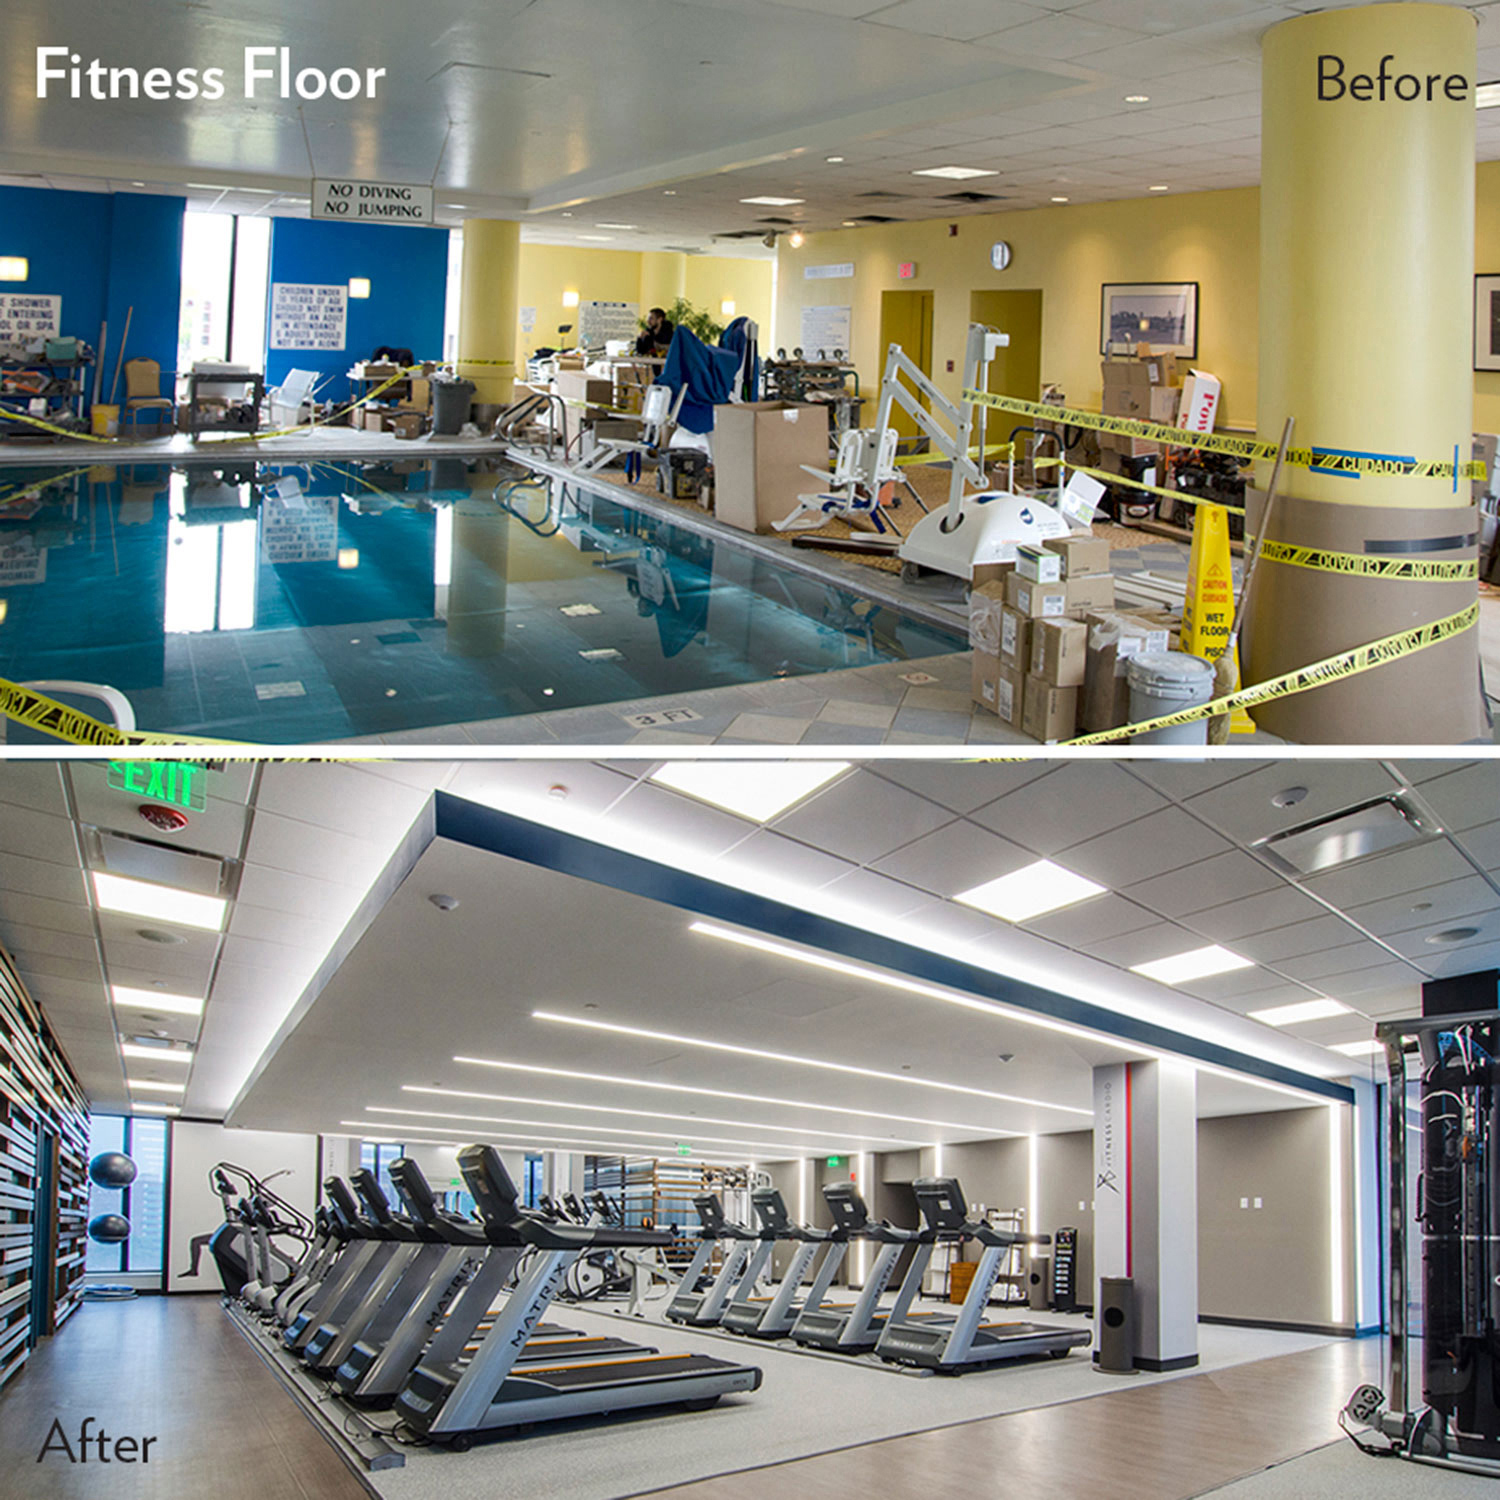 Marriott-Fitness-Floor.jpg